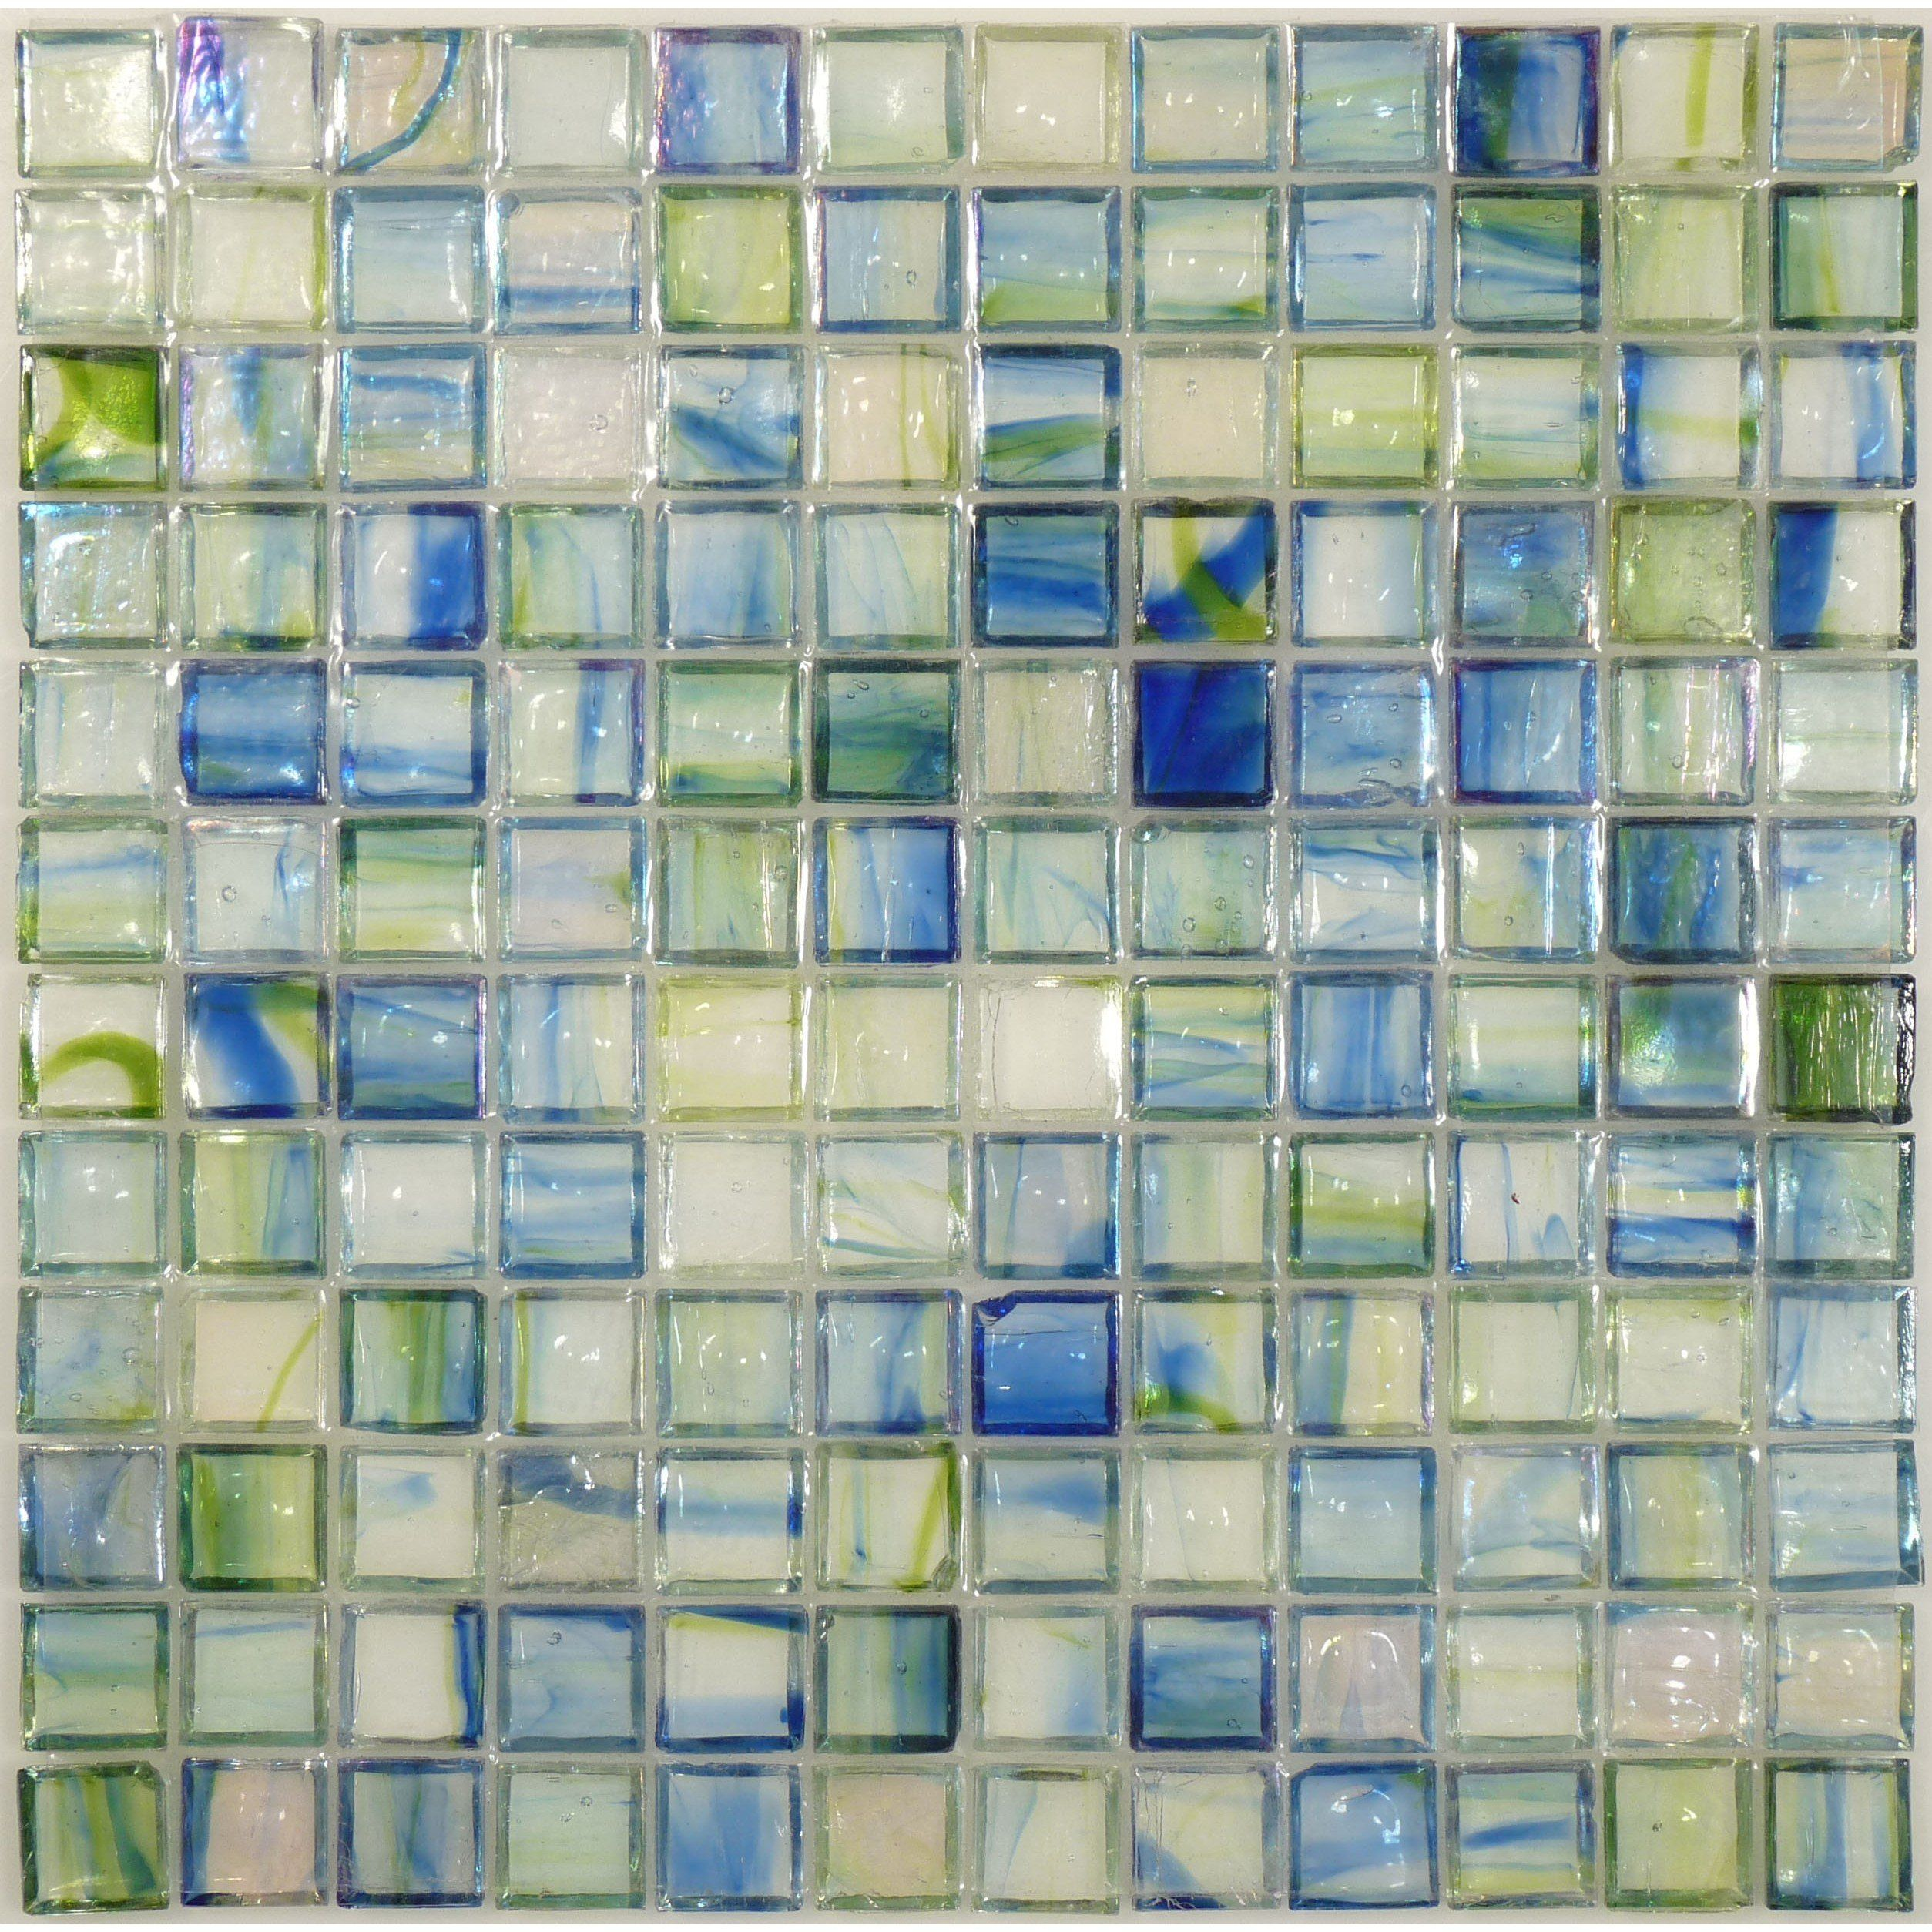 Hirsch 1 X 1 Green Glass Square Tile Glossy Iridescent Ji0142 Iridescent Glass Glass Tile Iridescent Tile